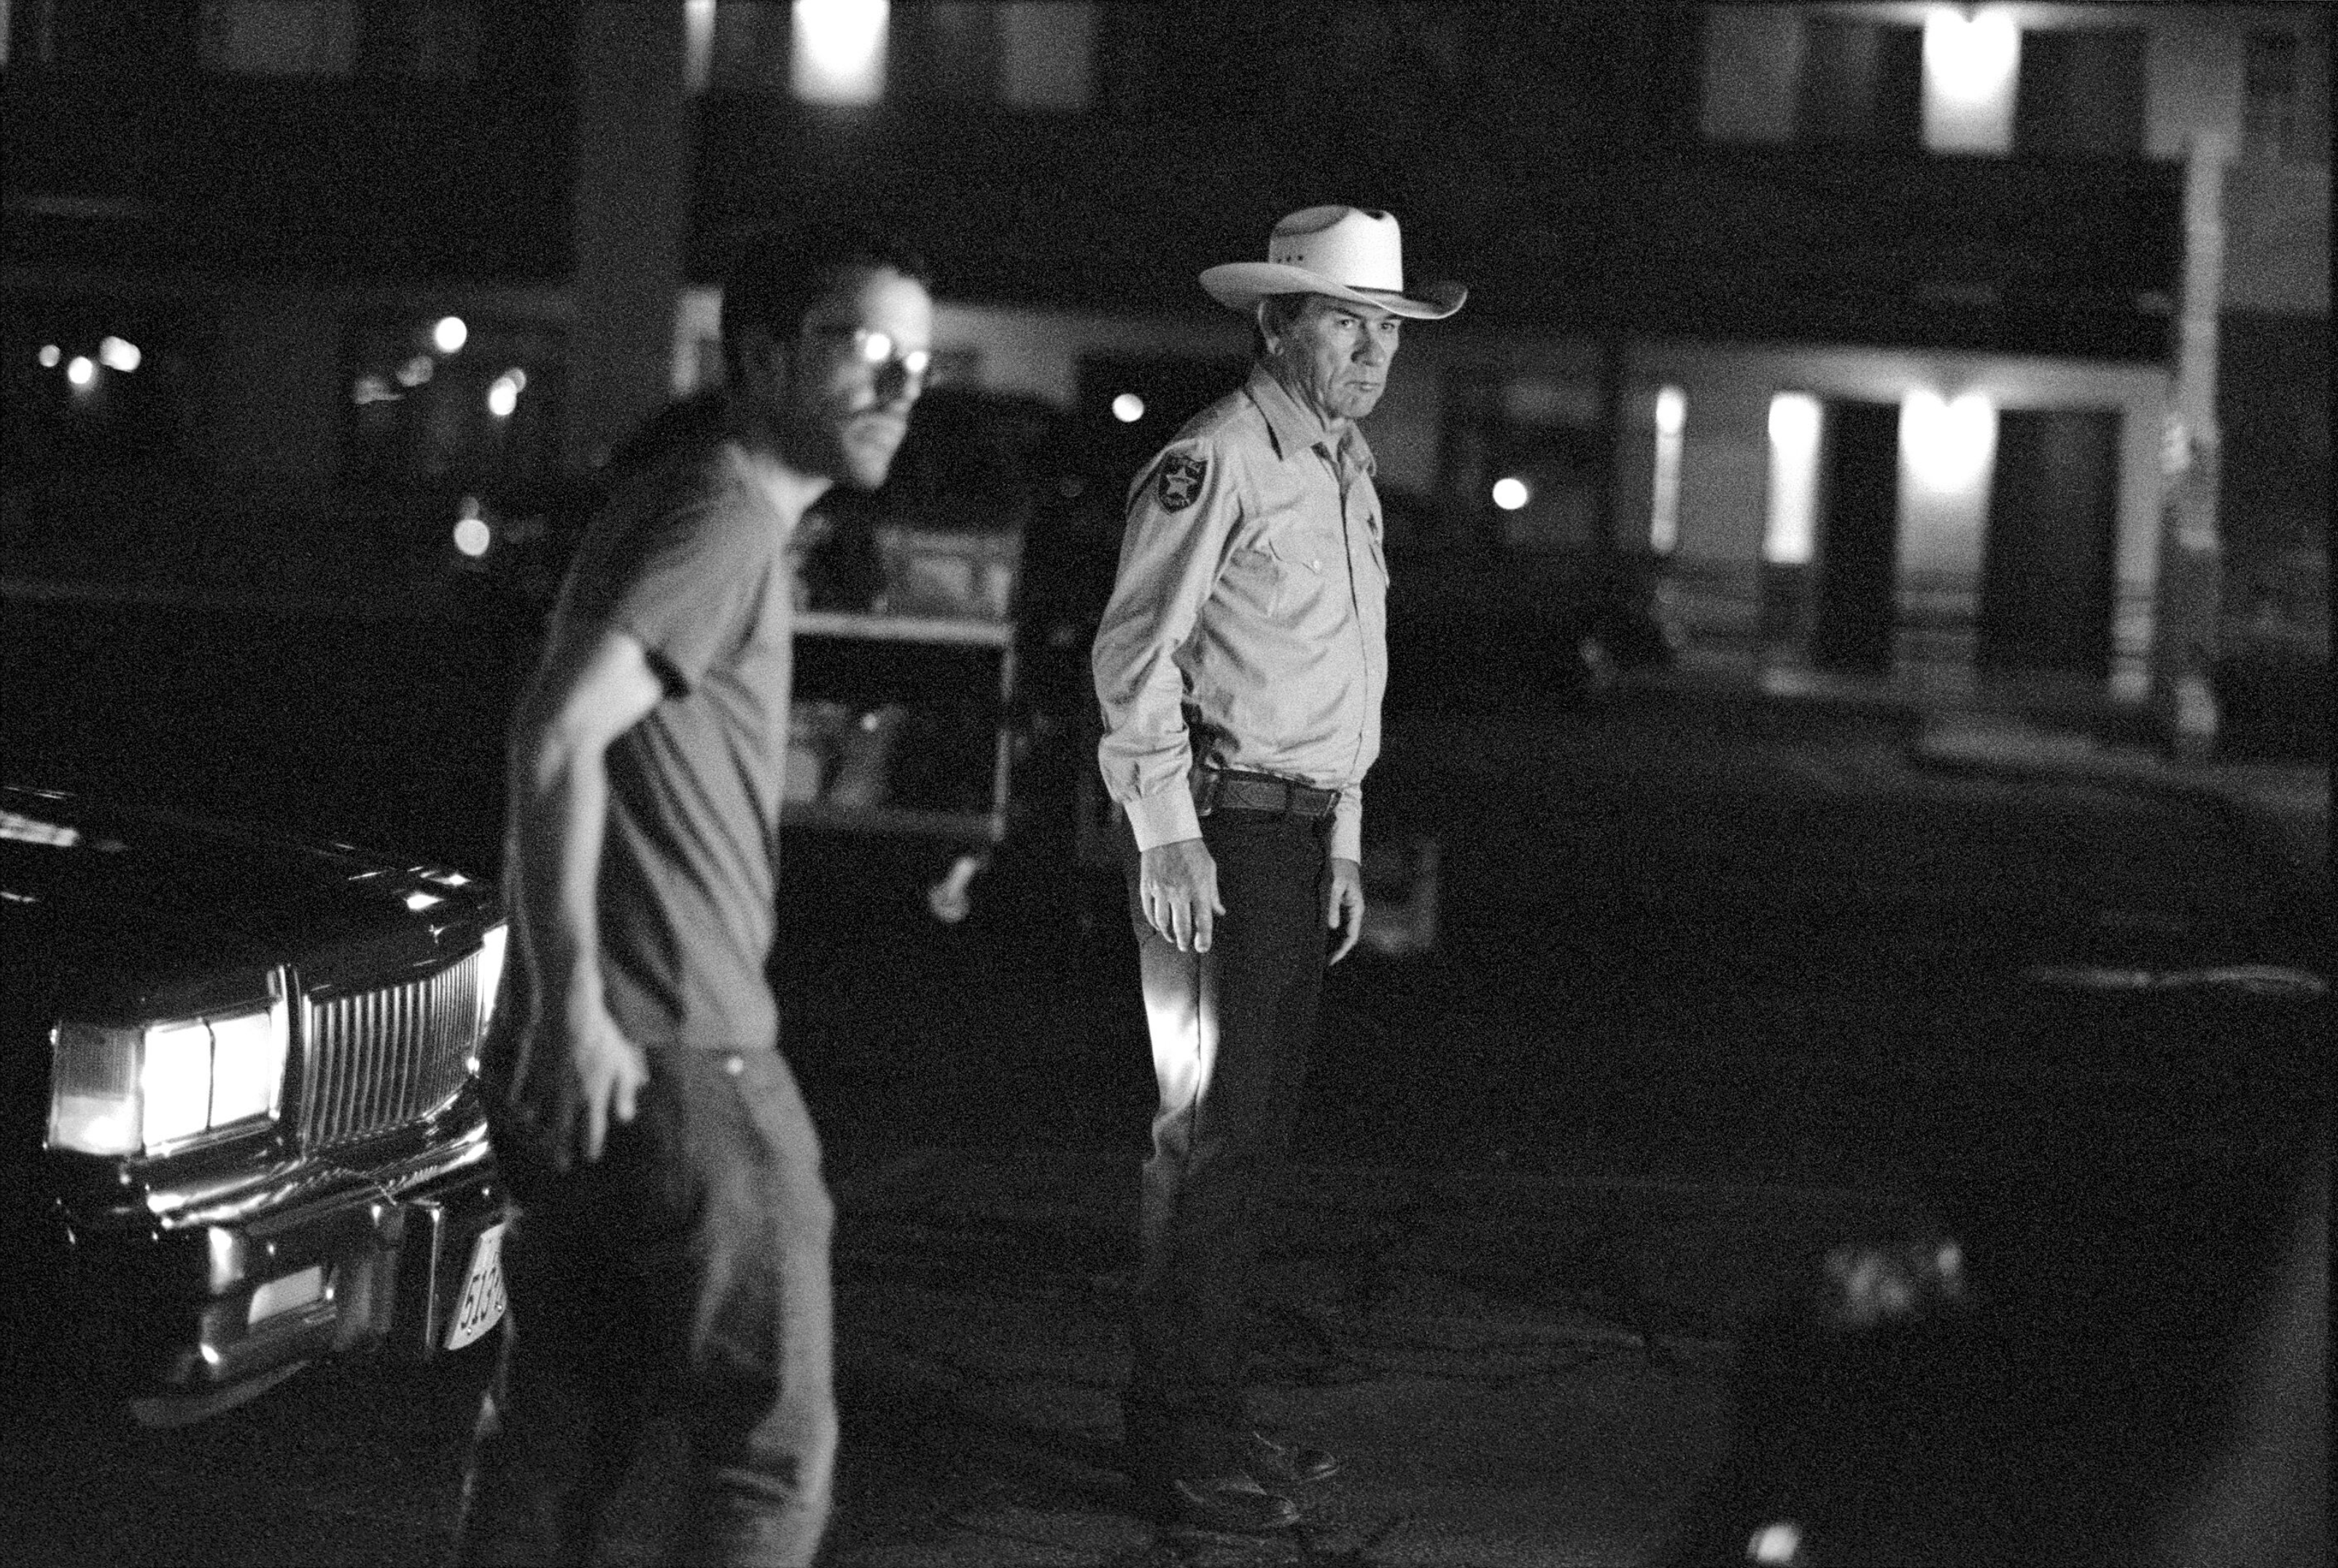 Ethan Coen and Tommy Lee Jones, Albuquerque, New Mexico, 2006